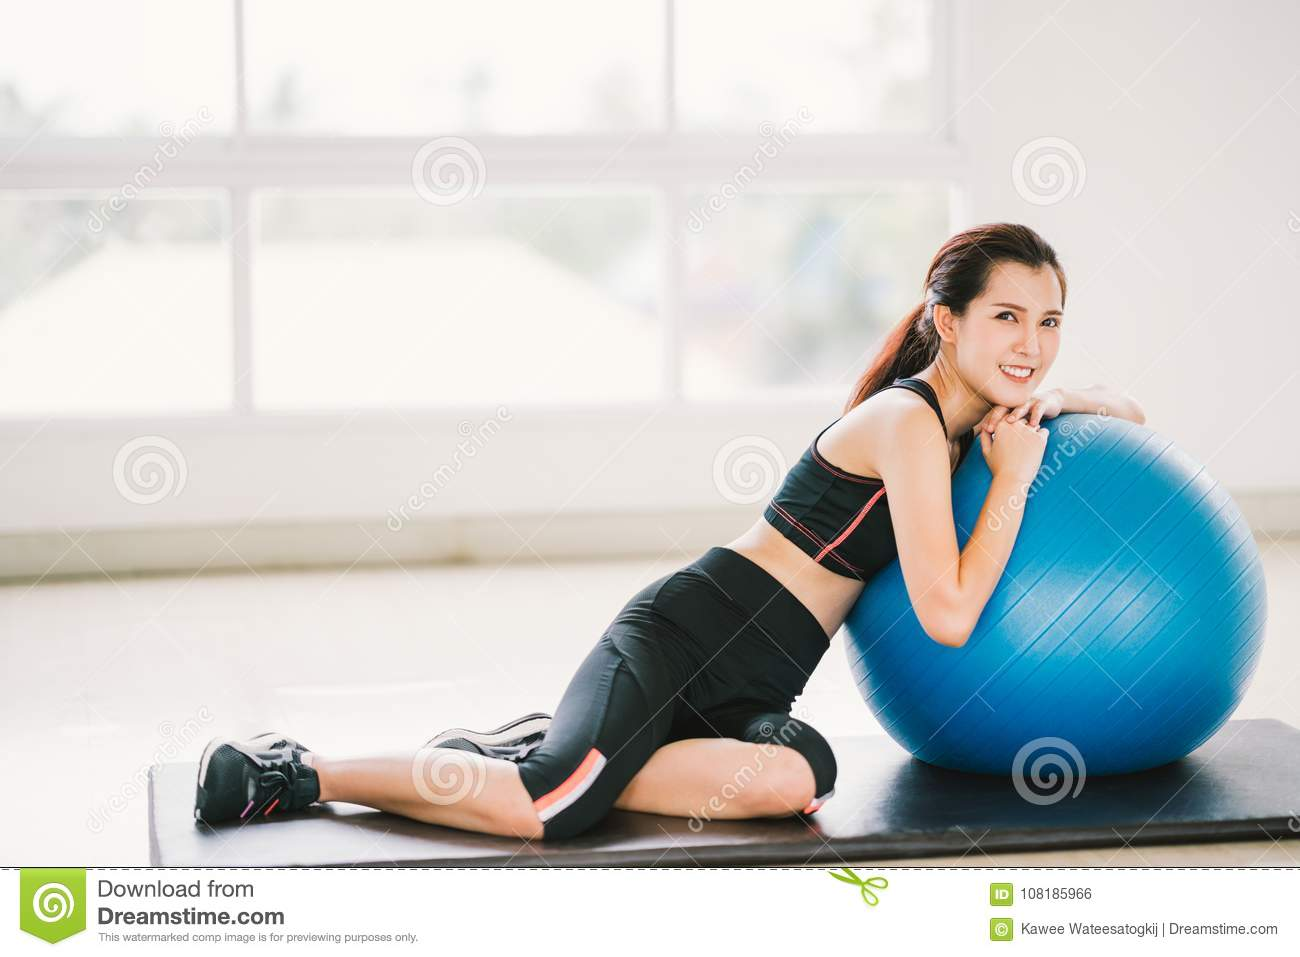 Young Asian girl exercise at clean home gym, sports club. Rest on fitness ball. Yoga aerobic class, sport trainer concept